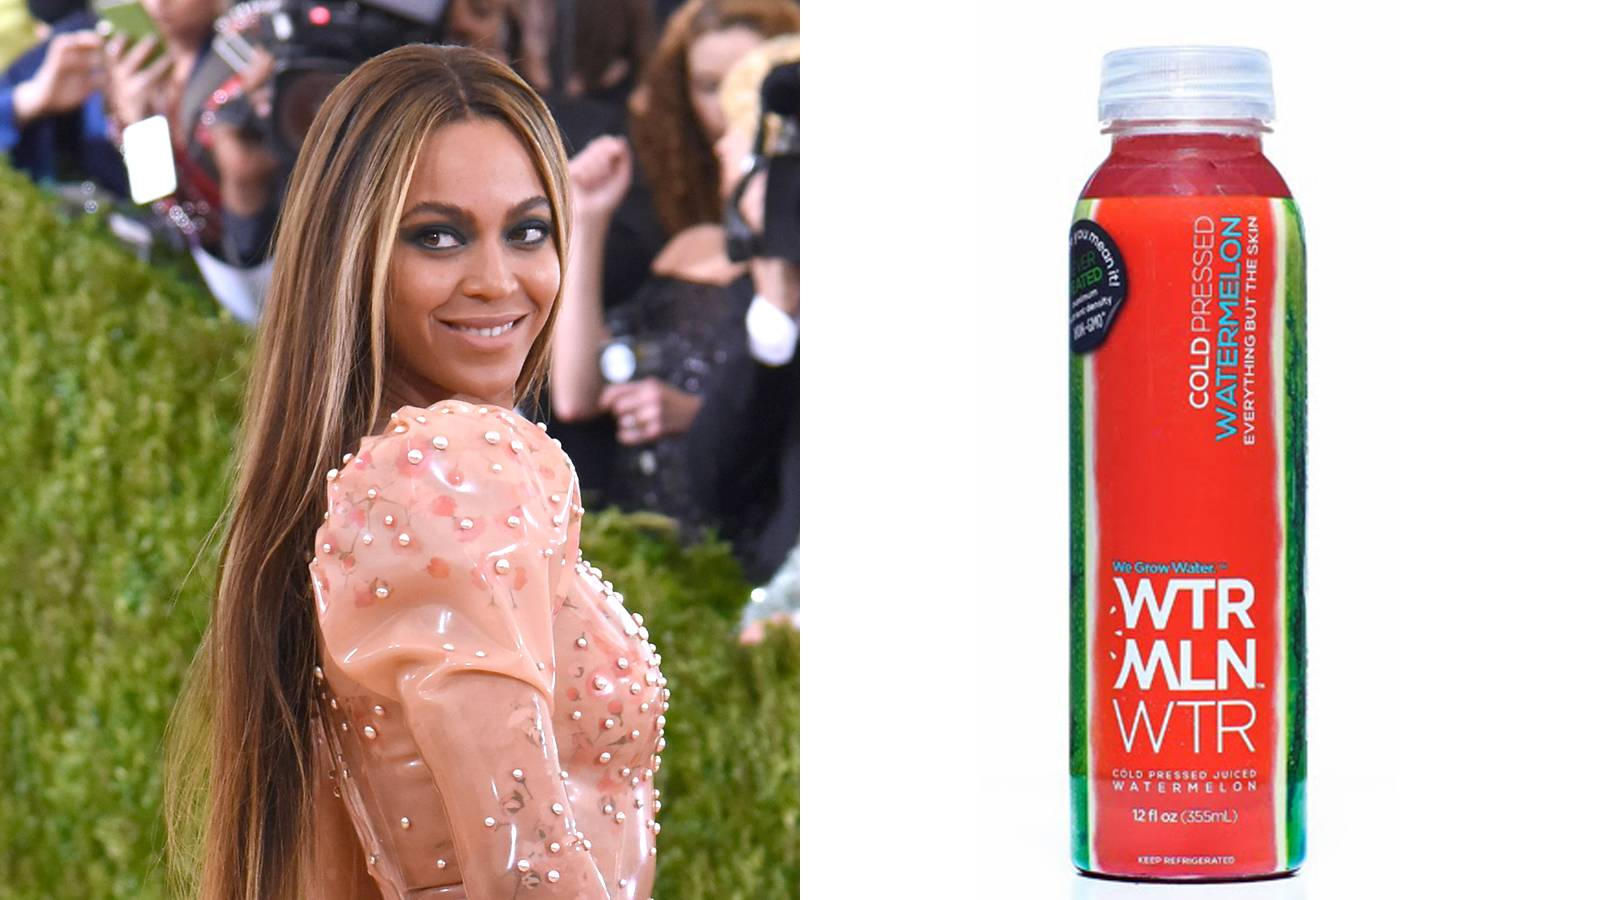 Beyonce May Have Traded Her Lemonade for WTRMLN Water - Beyonce may have quenched our thirst last week with Lemonade, but she's investing some of her coins in another fruit: watermelon. The diva just put some of her stakes in WTRMLN WTR, a fast growing pressed juice drink.(Photo from left:Larry Busacca/Getty Images, WTRMLN WTR)